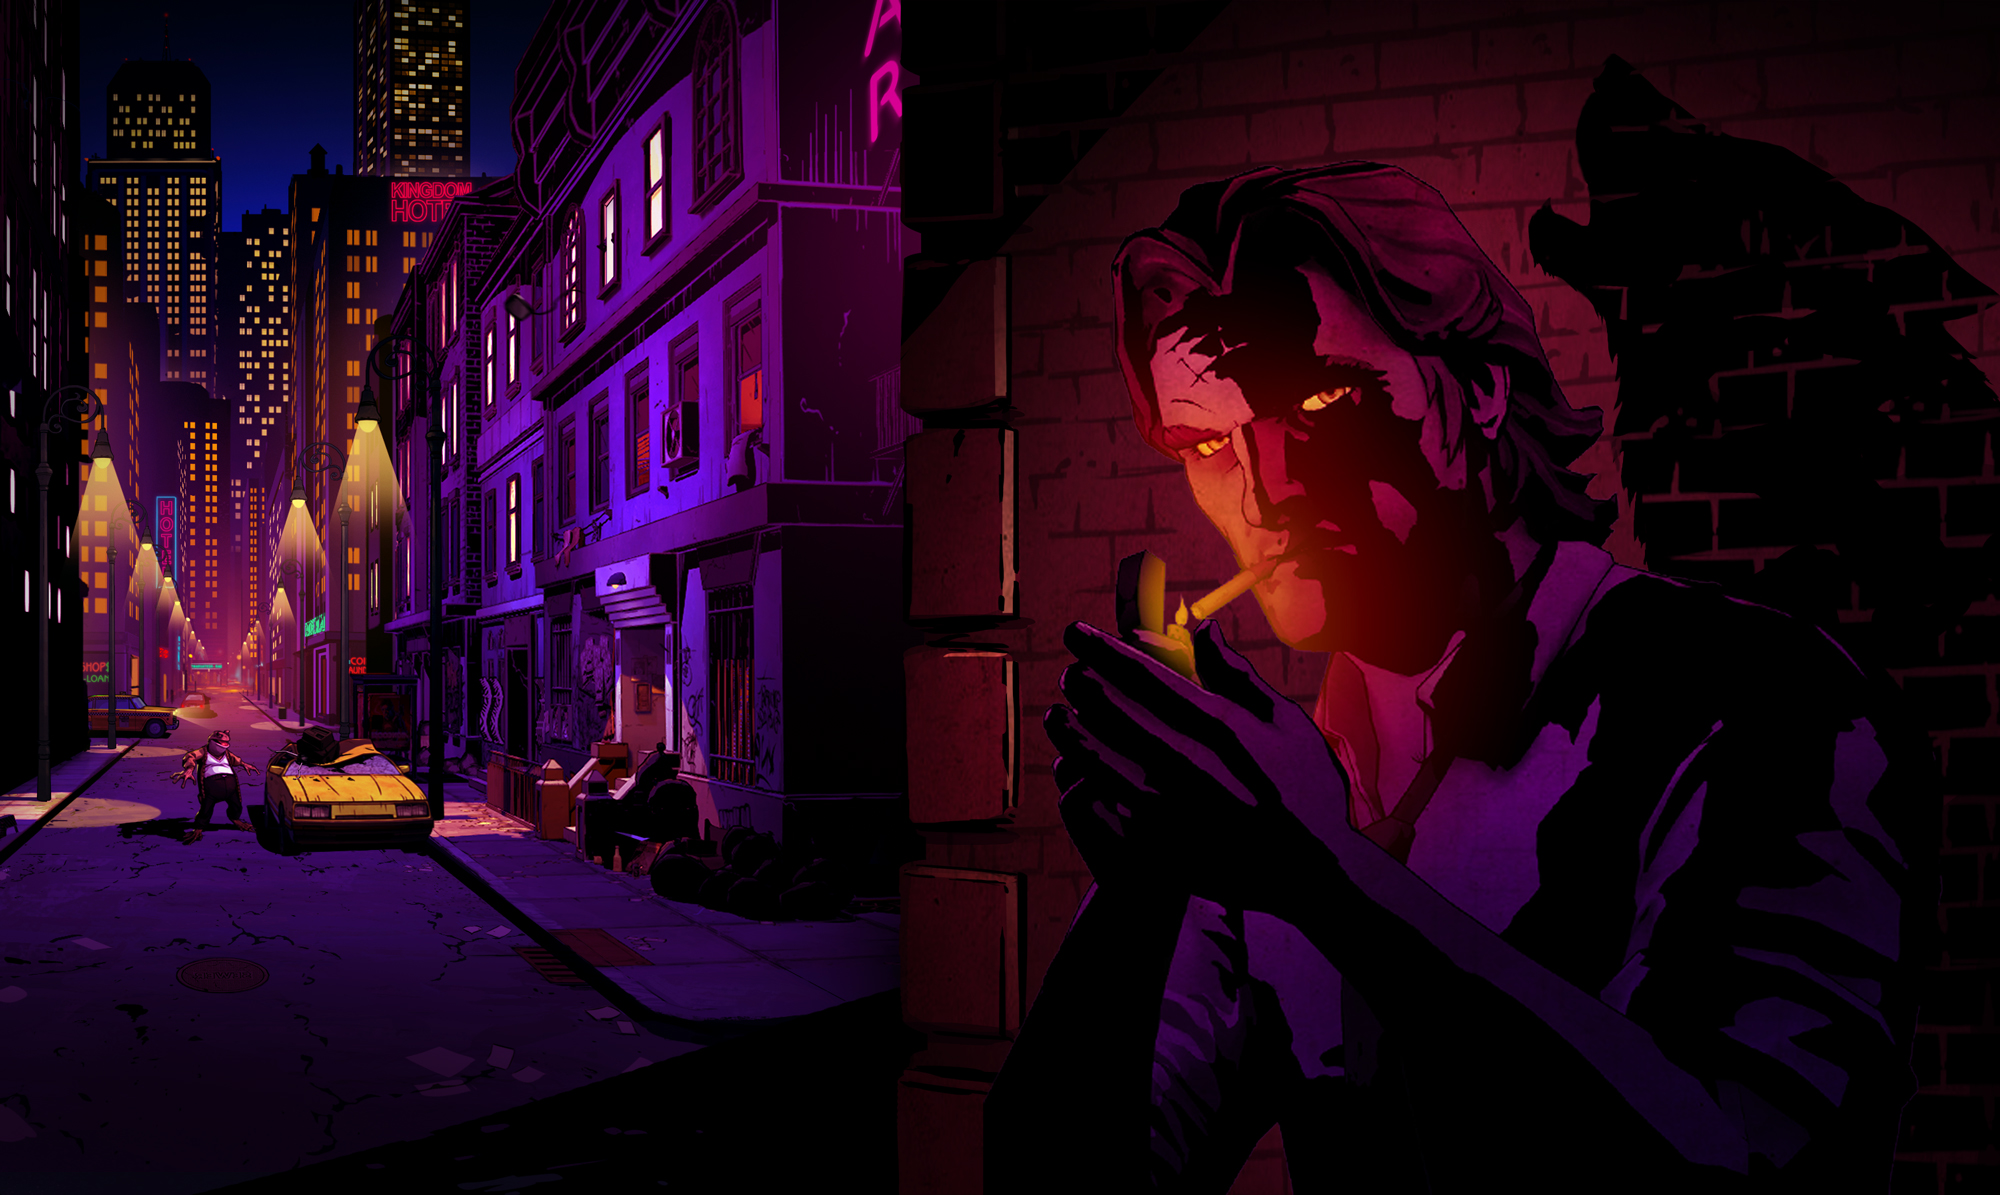 39 the wolf among us episode 1 faith 39 review sheriff 39 s. Black Bedroom Furniture Sets. Home Design Ideas